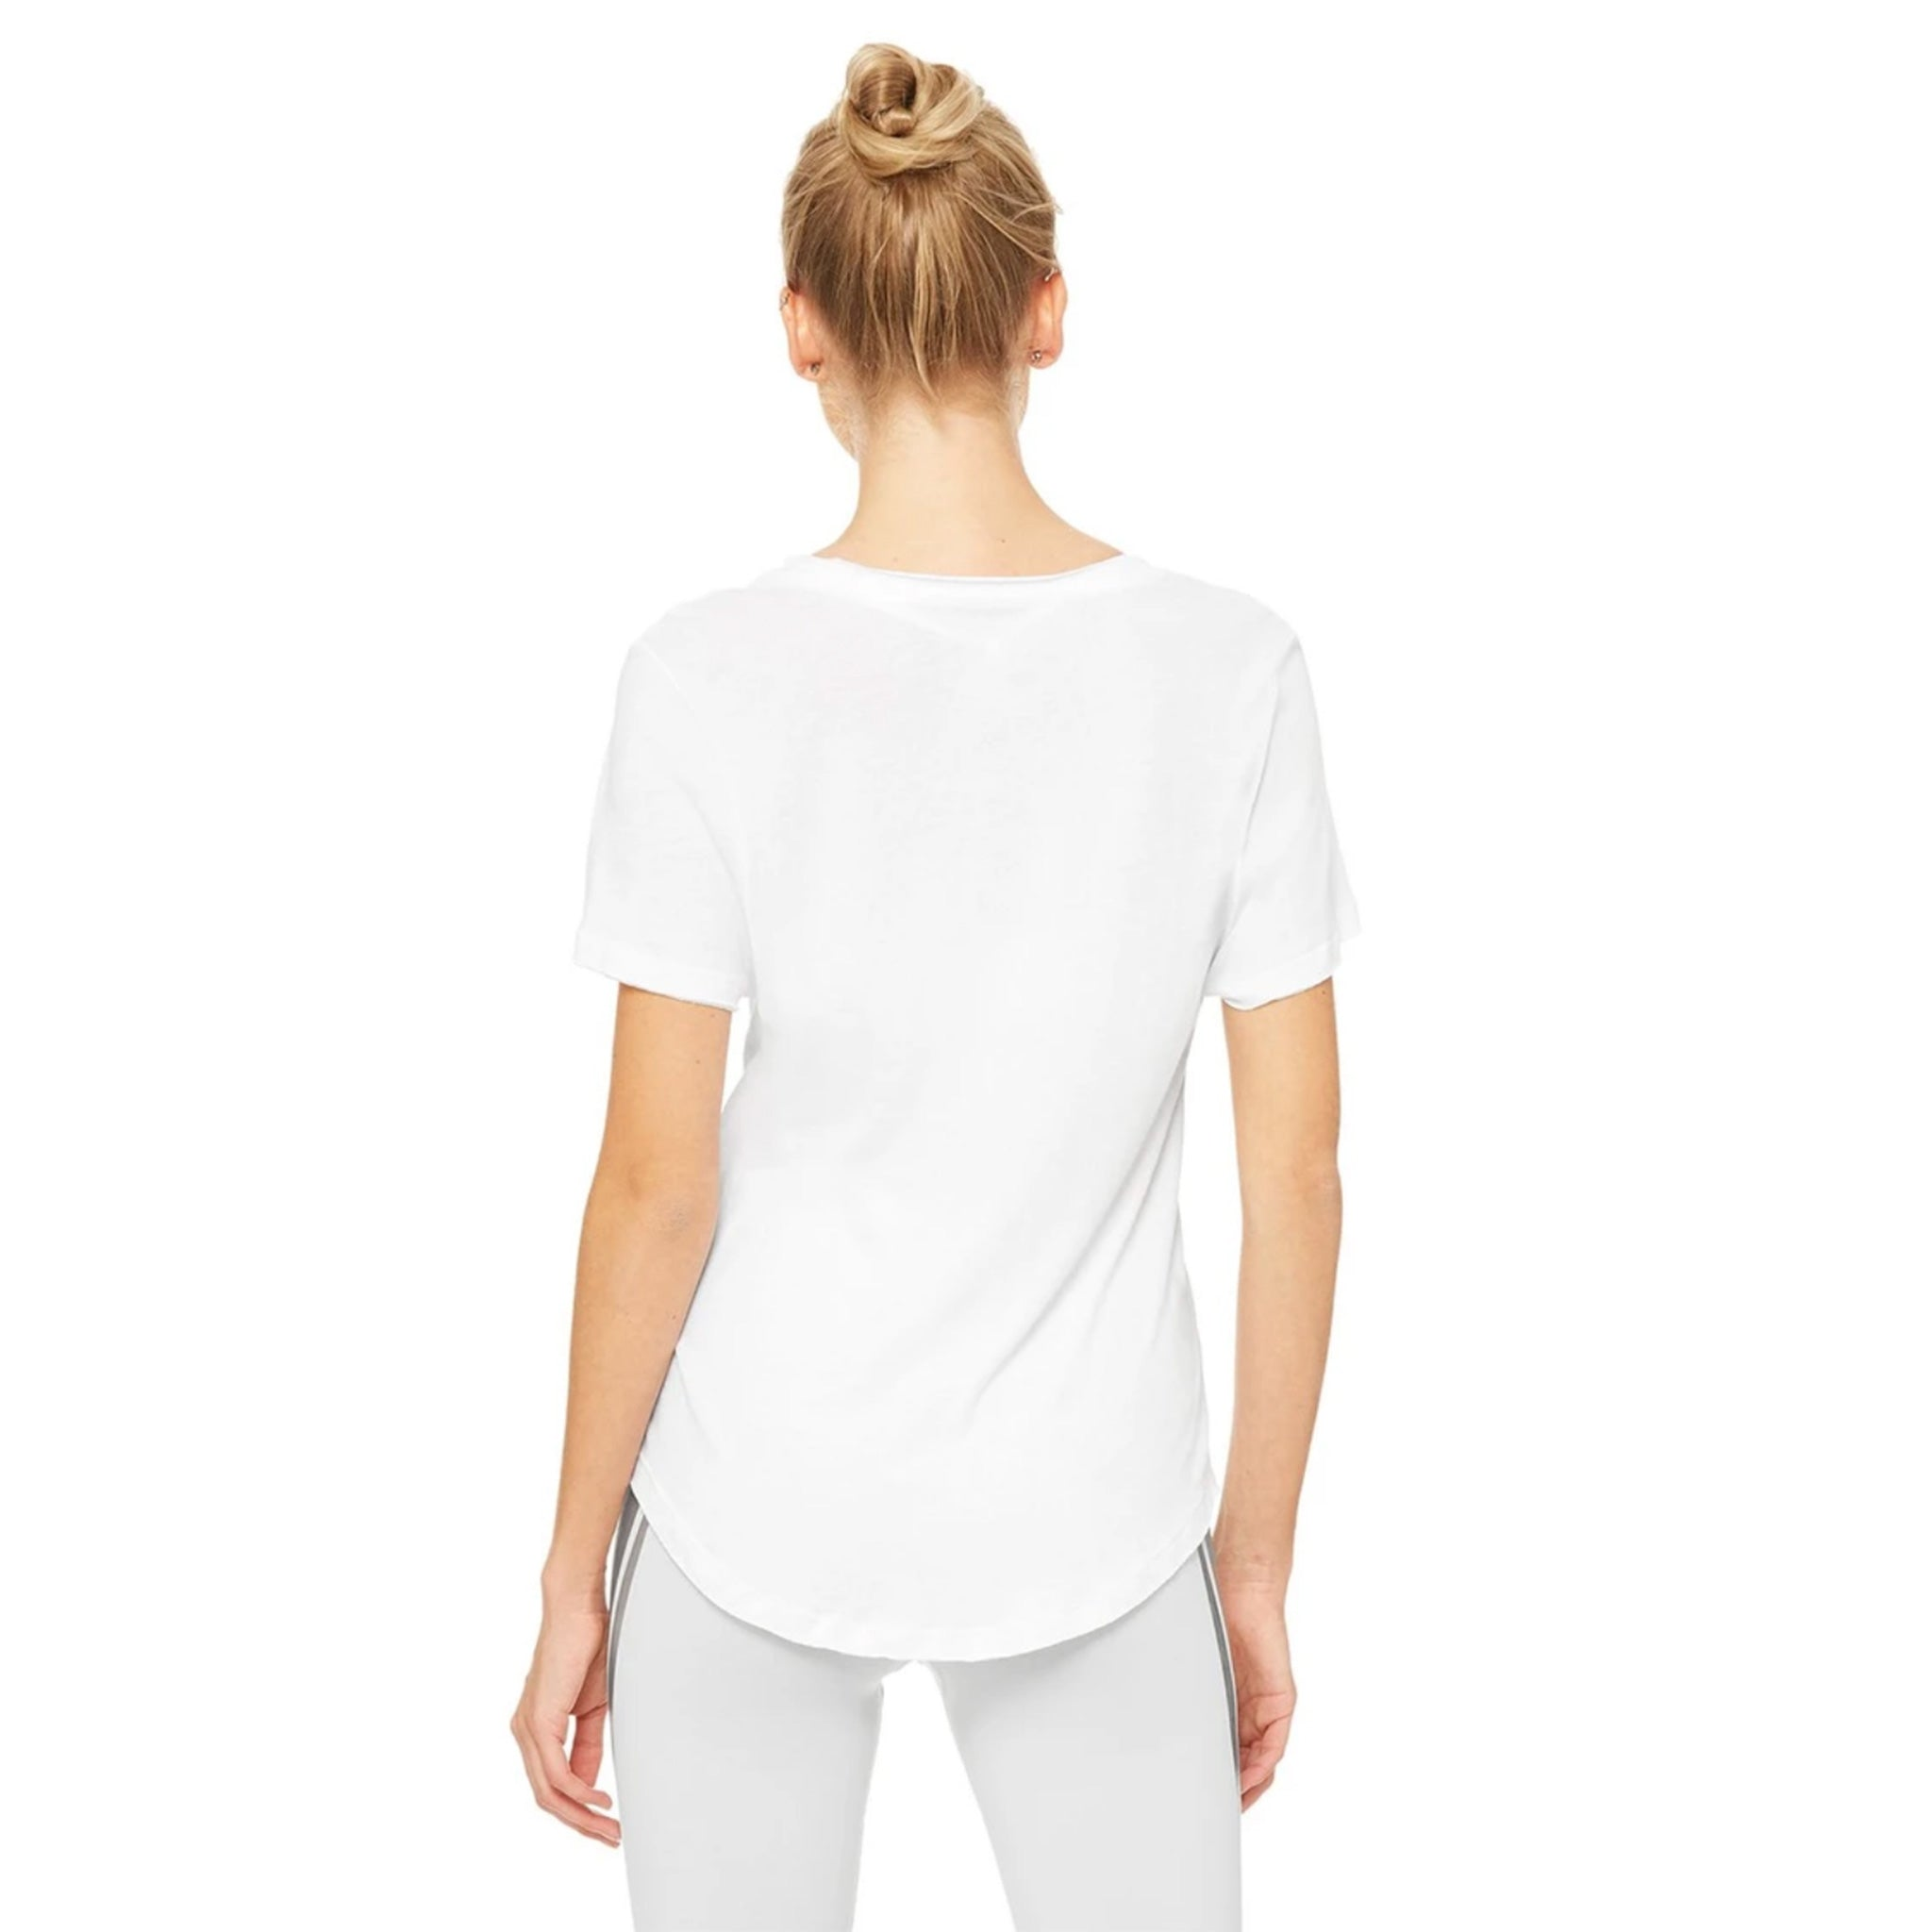 Alo Yoga Playa Tee Shirt in White backside